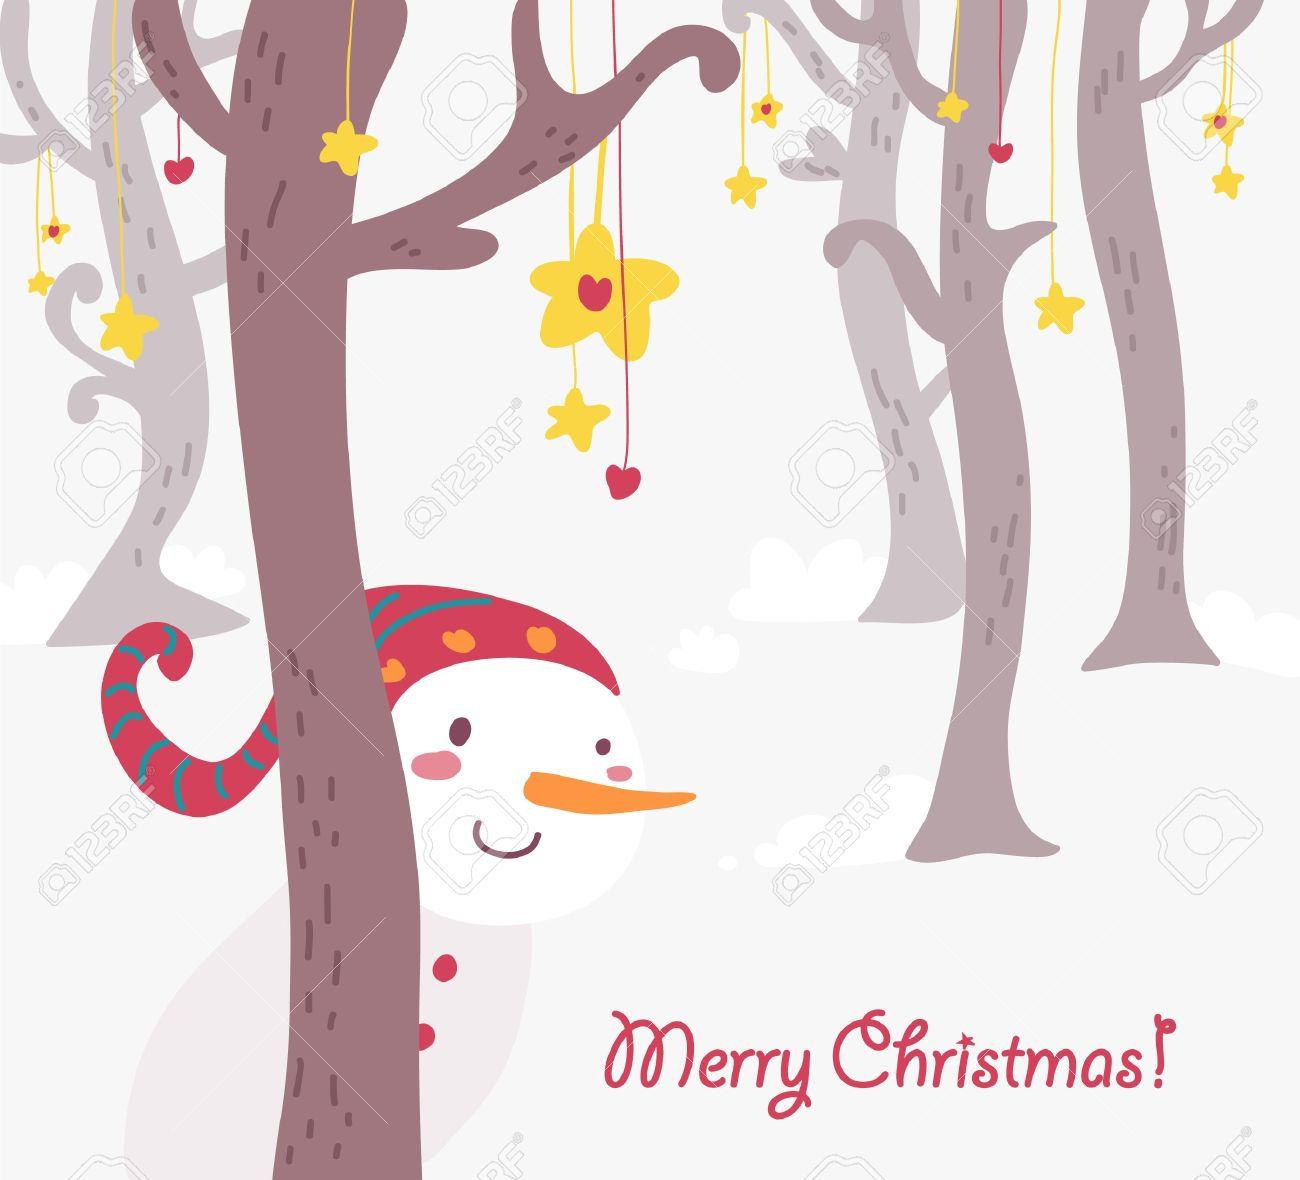 Funny Christmas Card Snowman Royalty Free Cliparts Vectors And